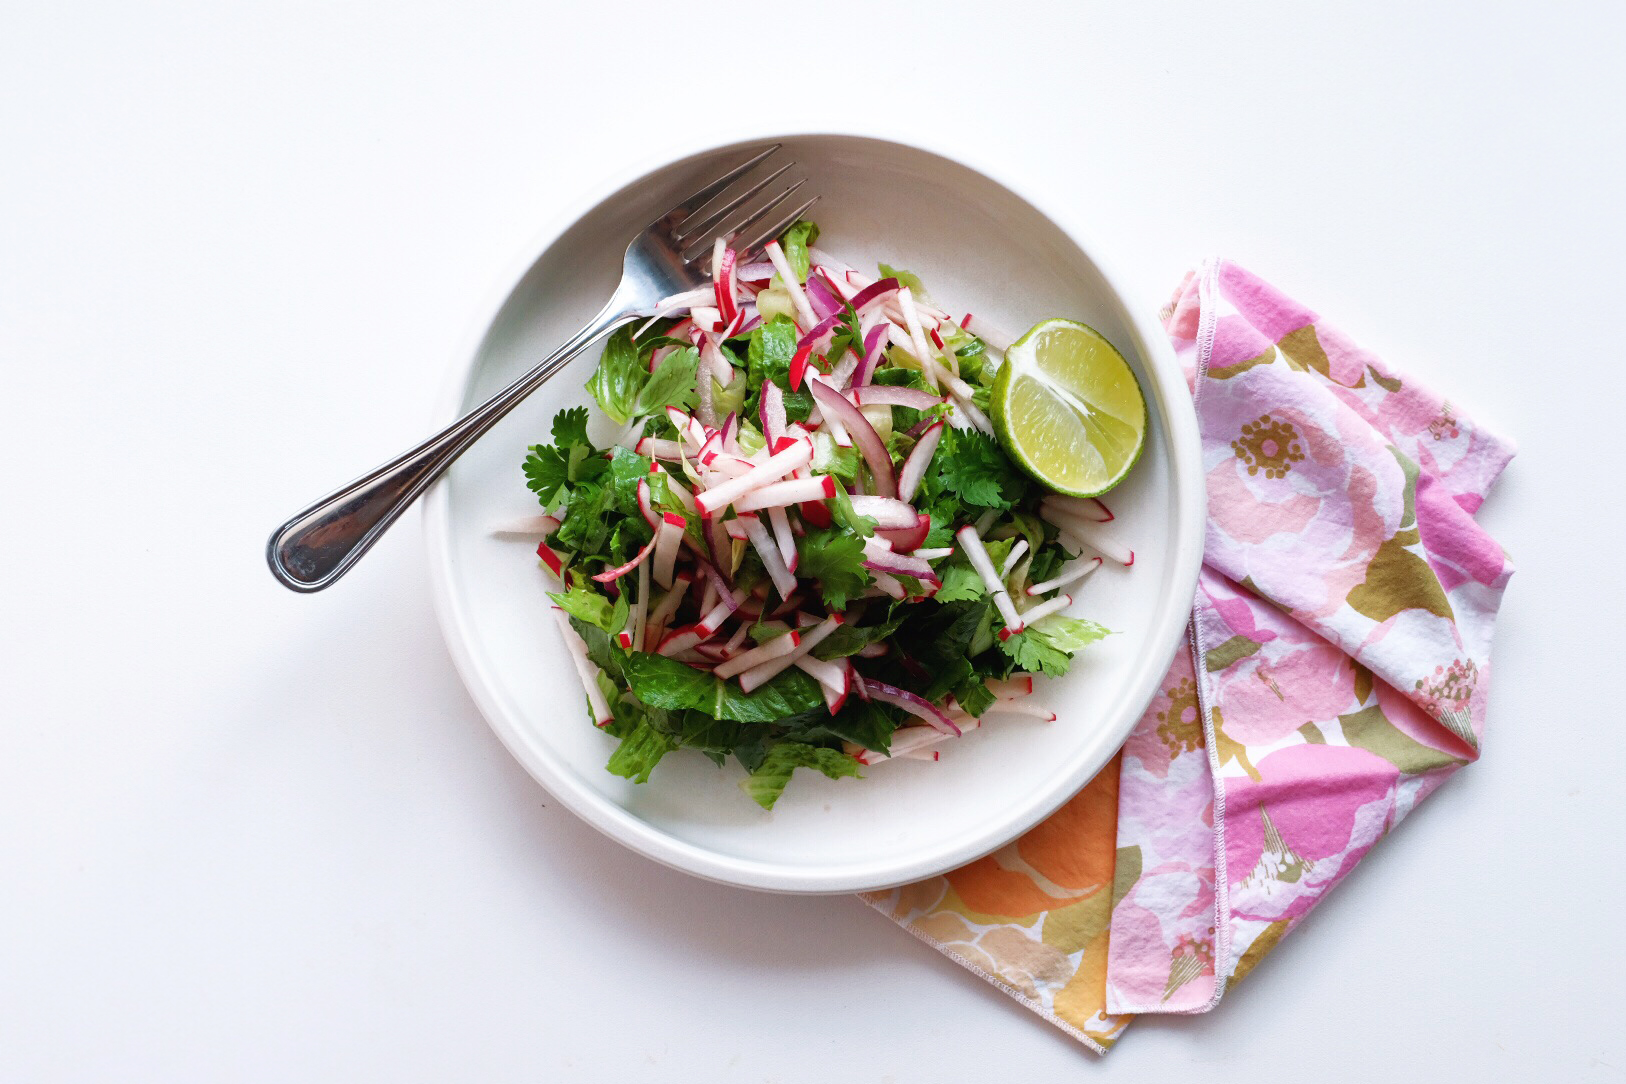 Marlowe's Favorite Radish Salad Recipe (Vegan + Oil Free)